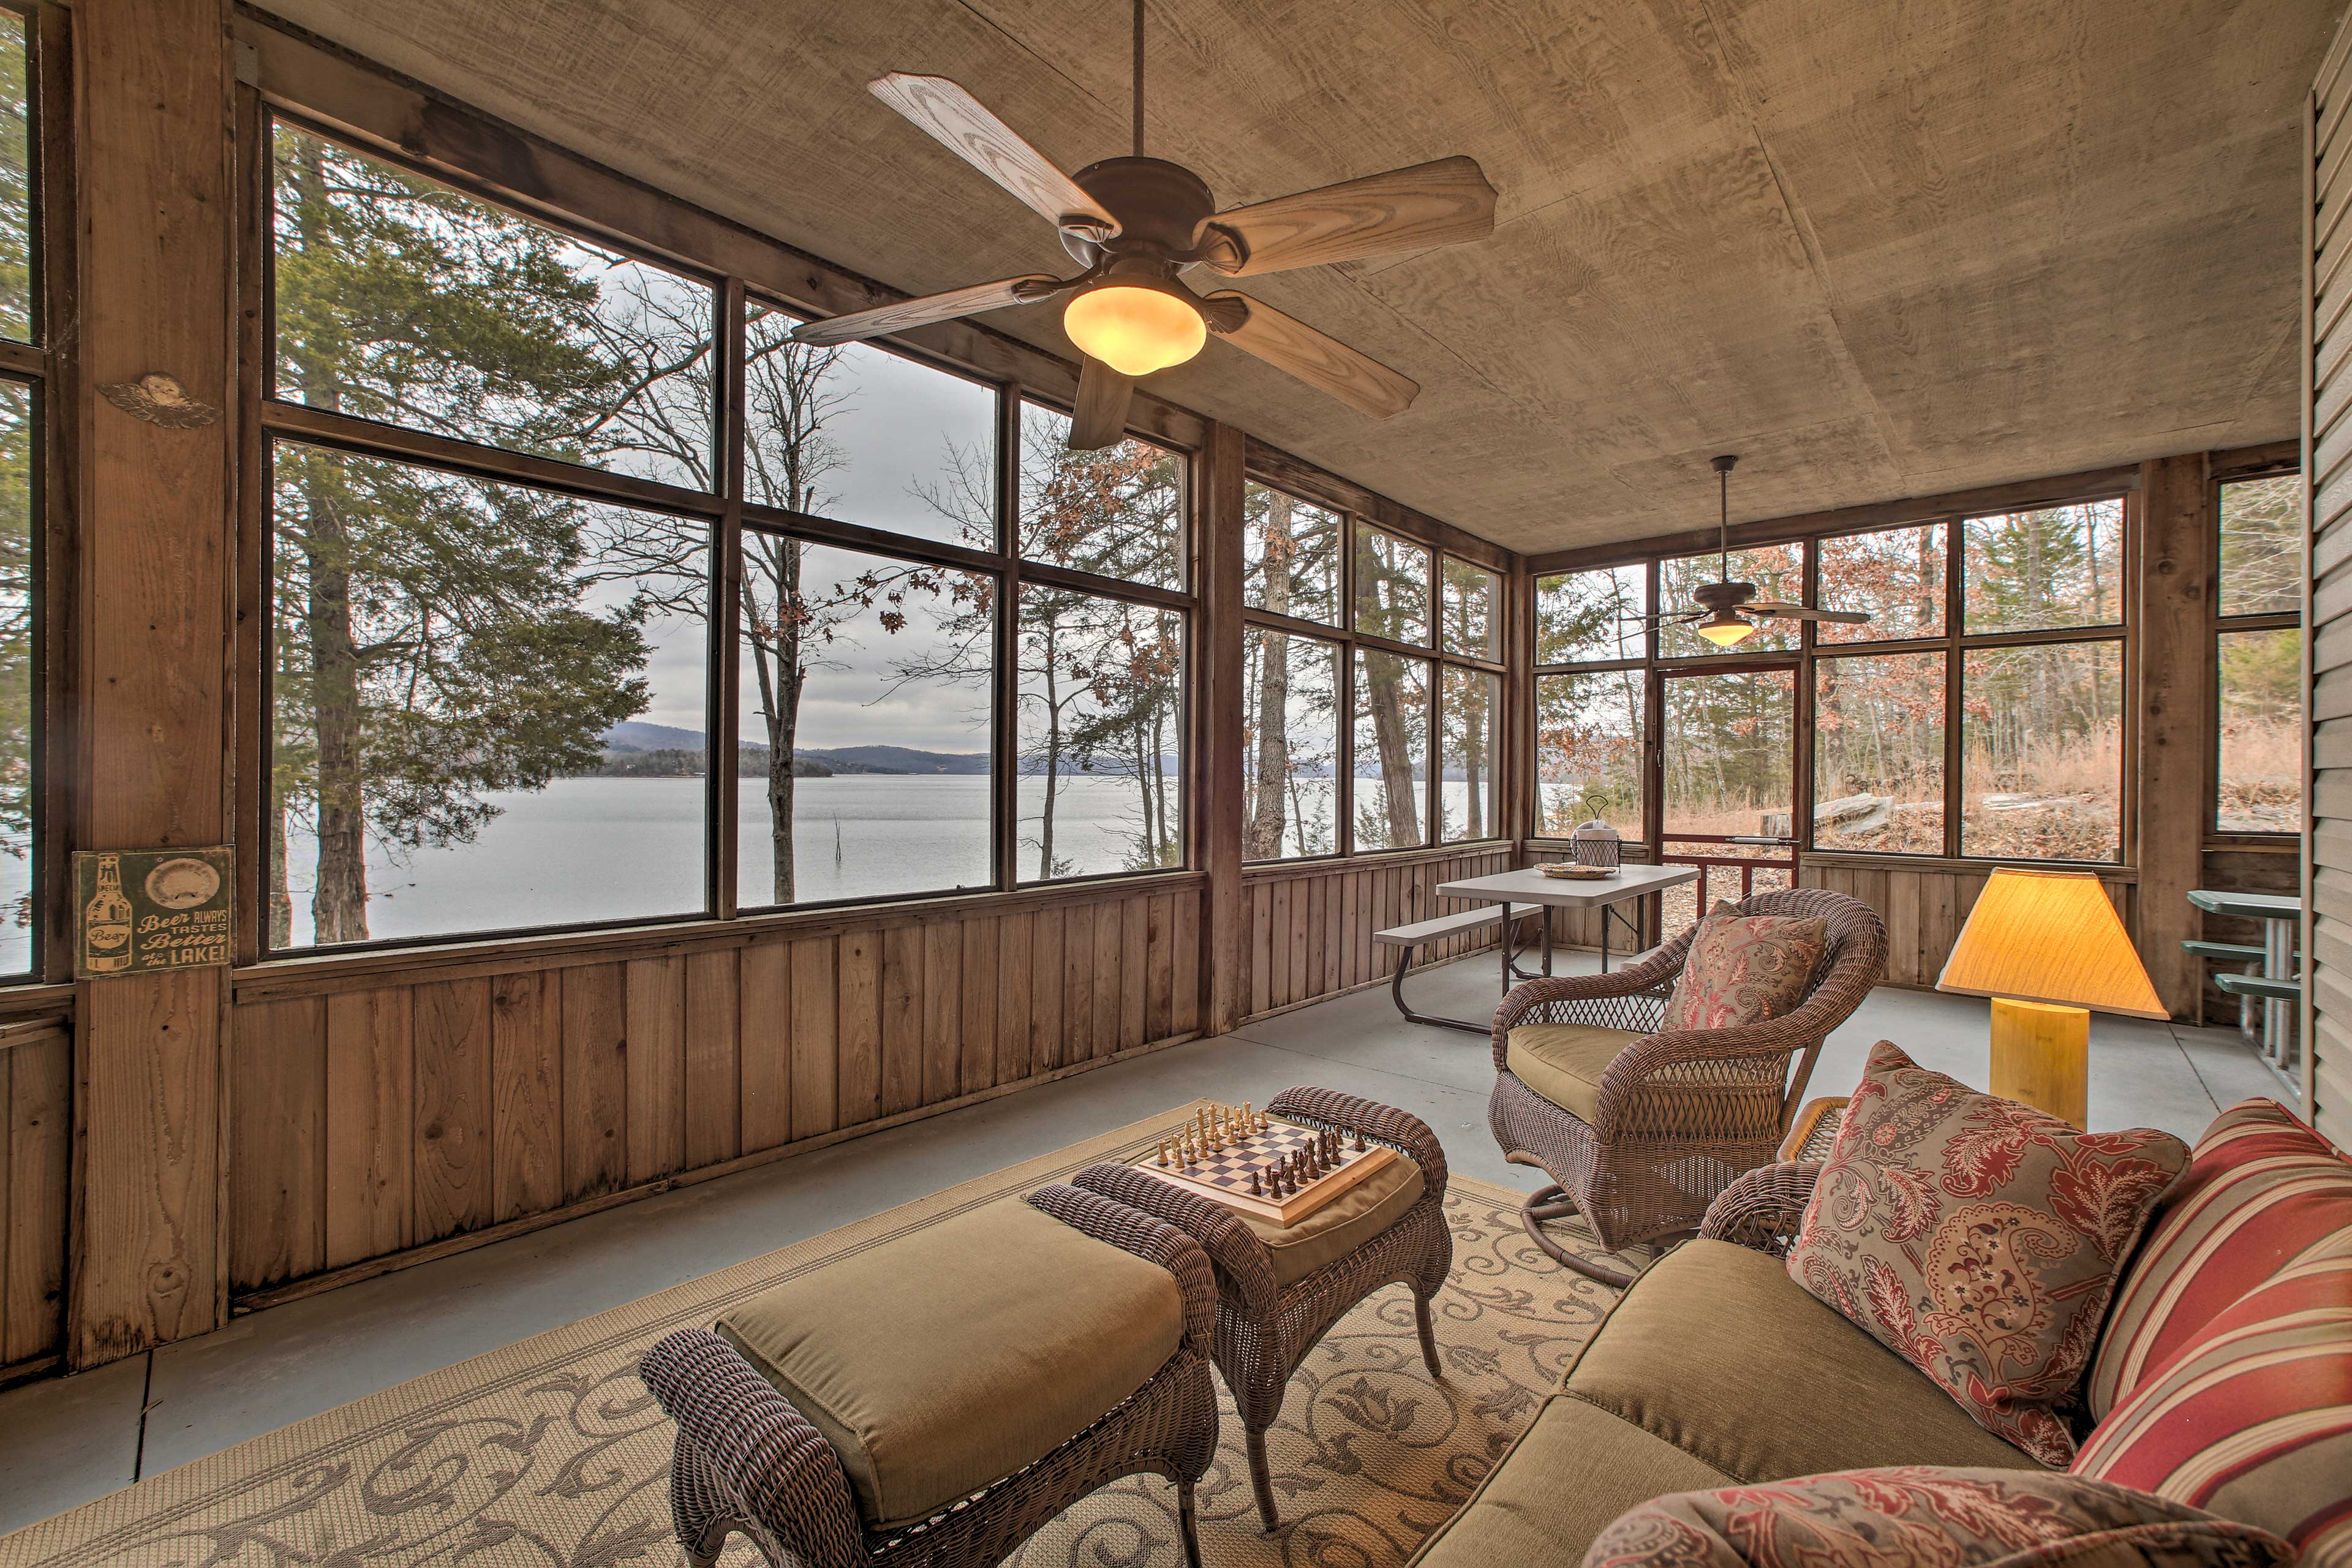 Enjoy the view through the large picture windows lining the walls.